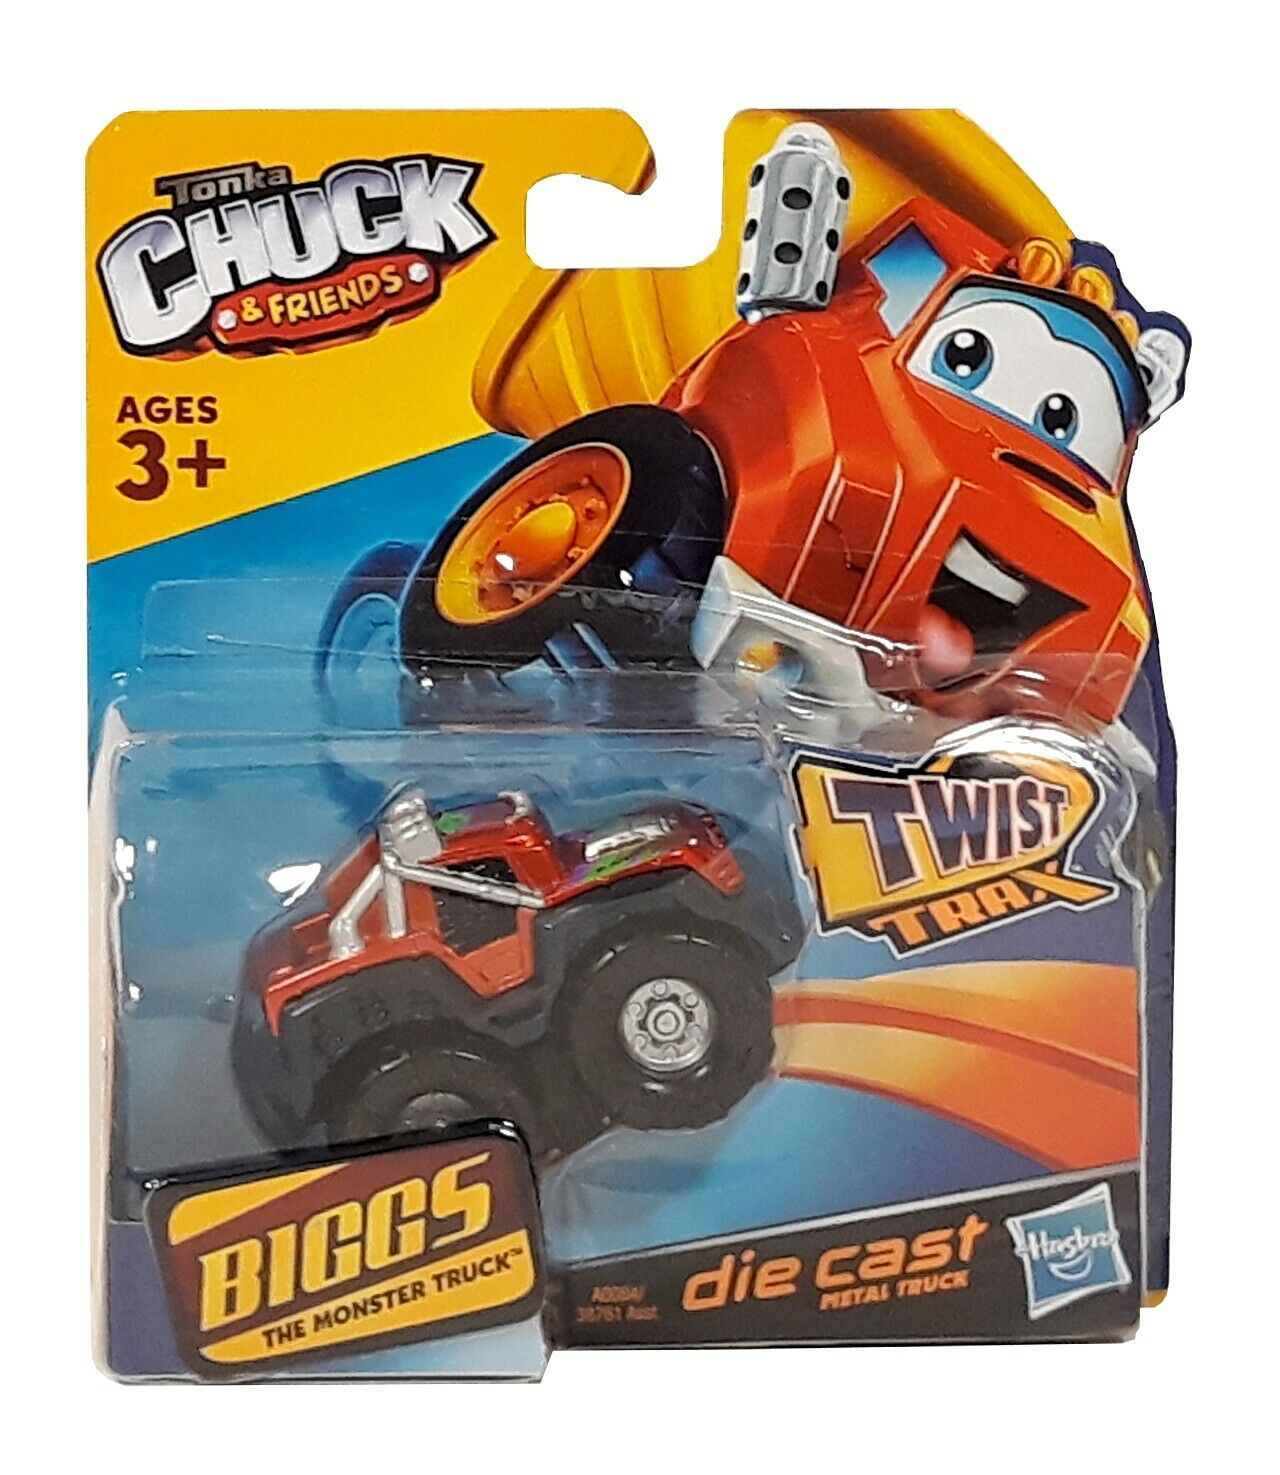 Tonka Chuck & Friends Biggs The Monster Truck Twist Trax New in Package - $6.88